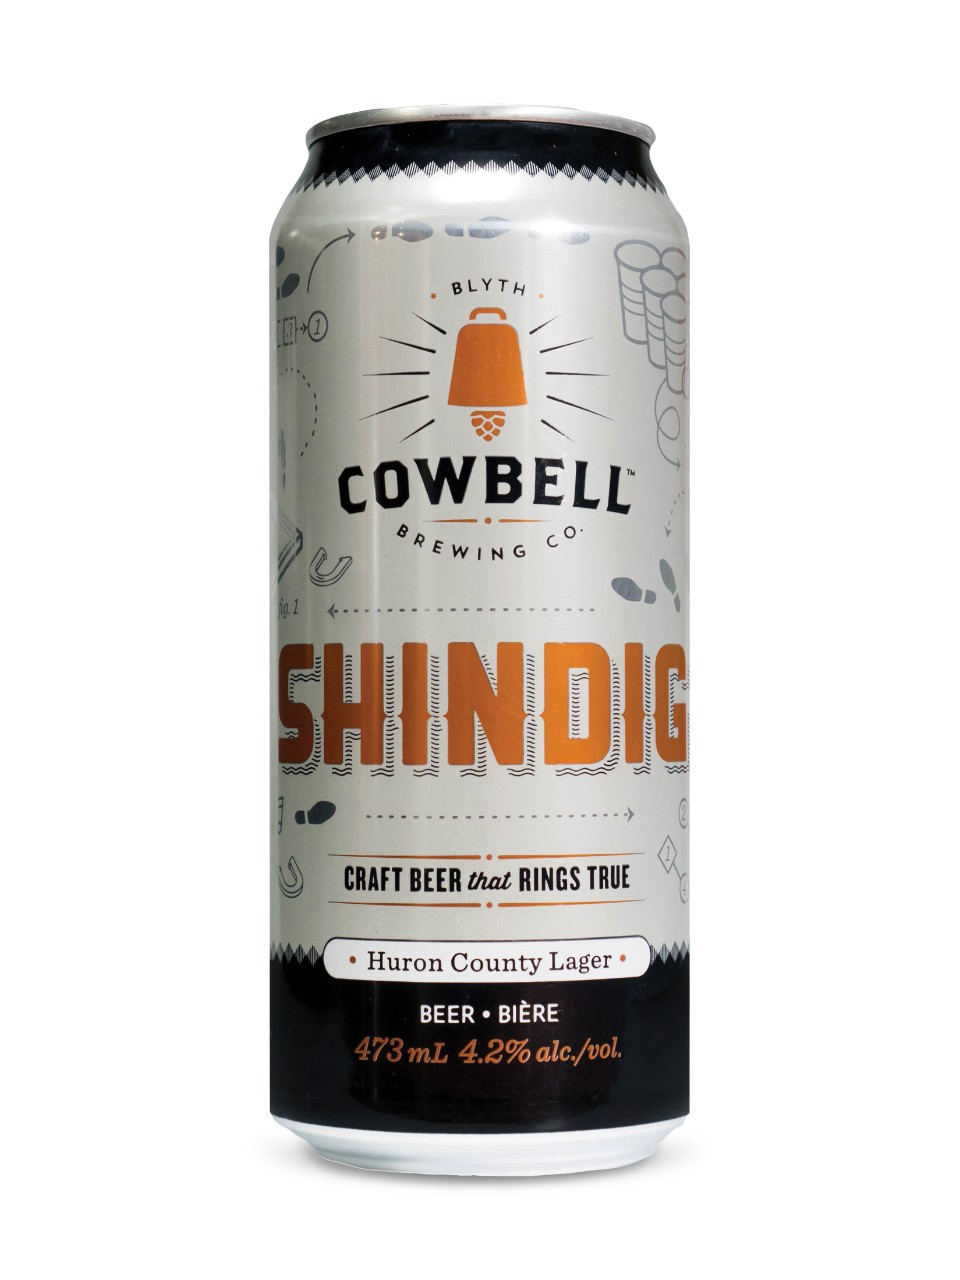 Cowbell Brewing Co. Shindig Huron County Lager from LCBO